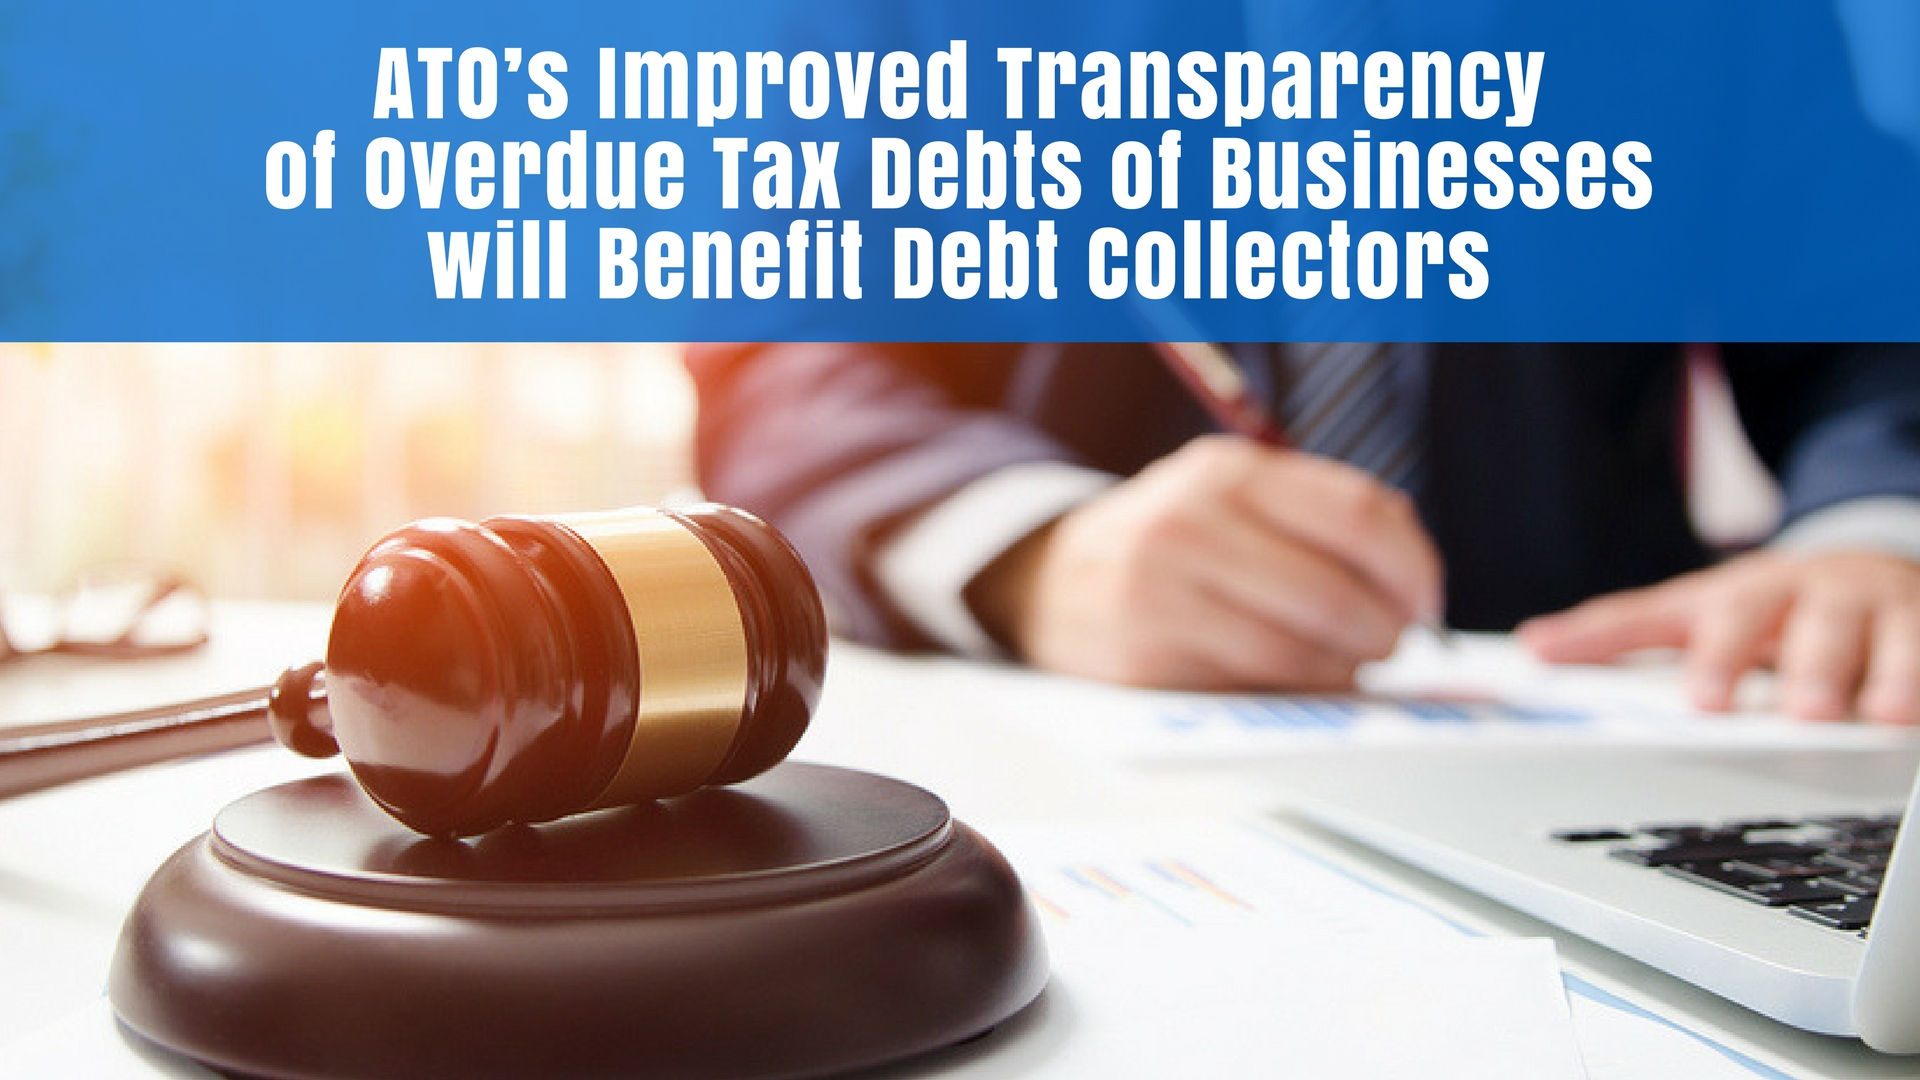 ATO's Improved Transparency of Overdue Tax Debts of Businesses will Benefit Debt Collectors